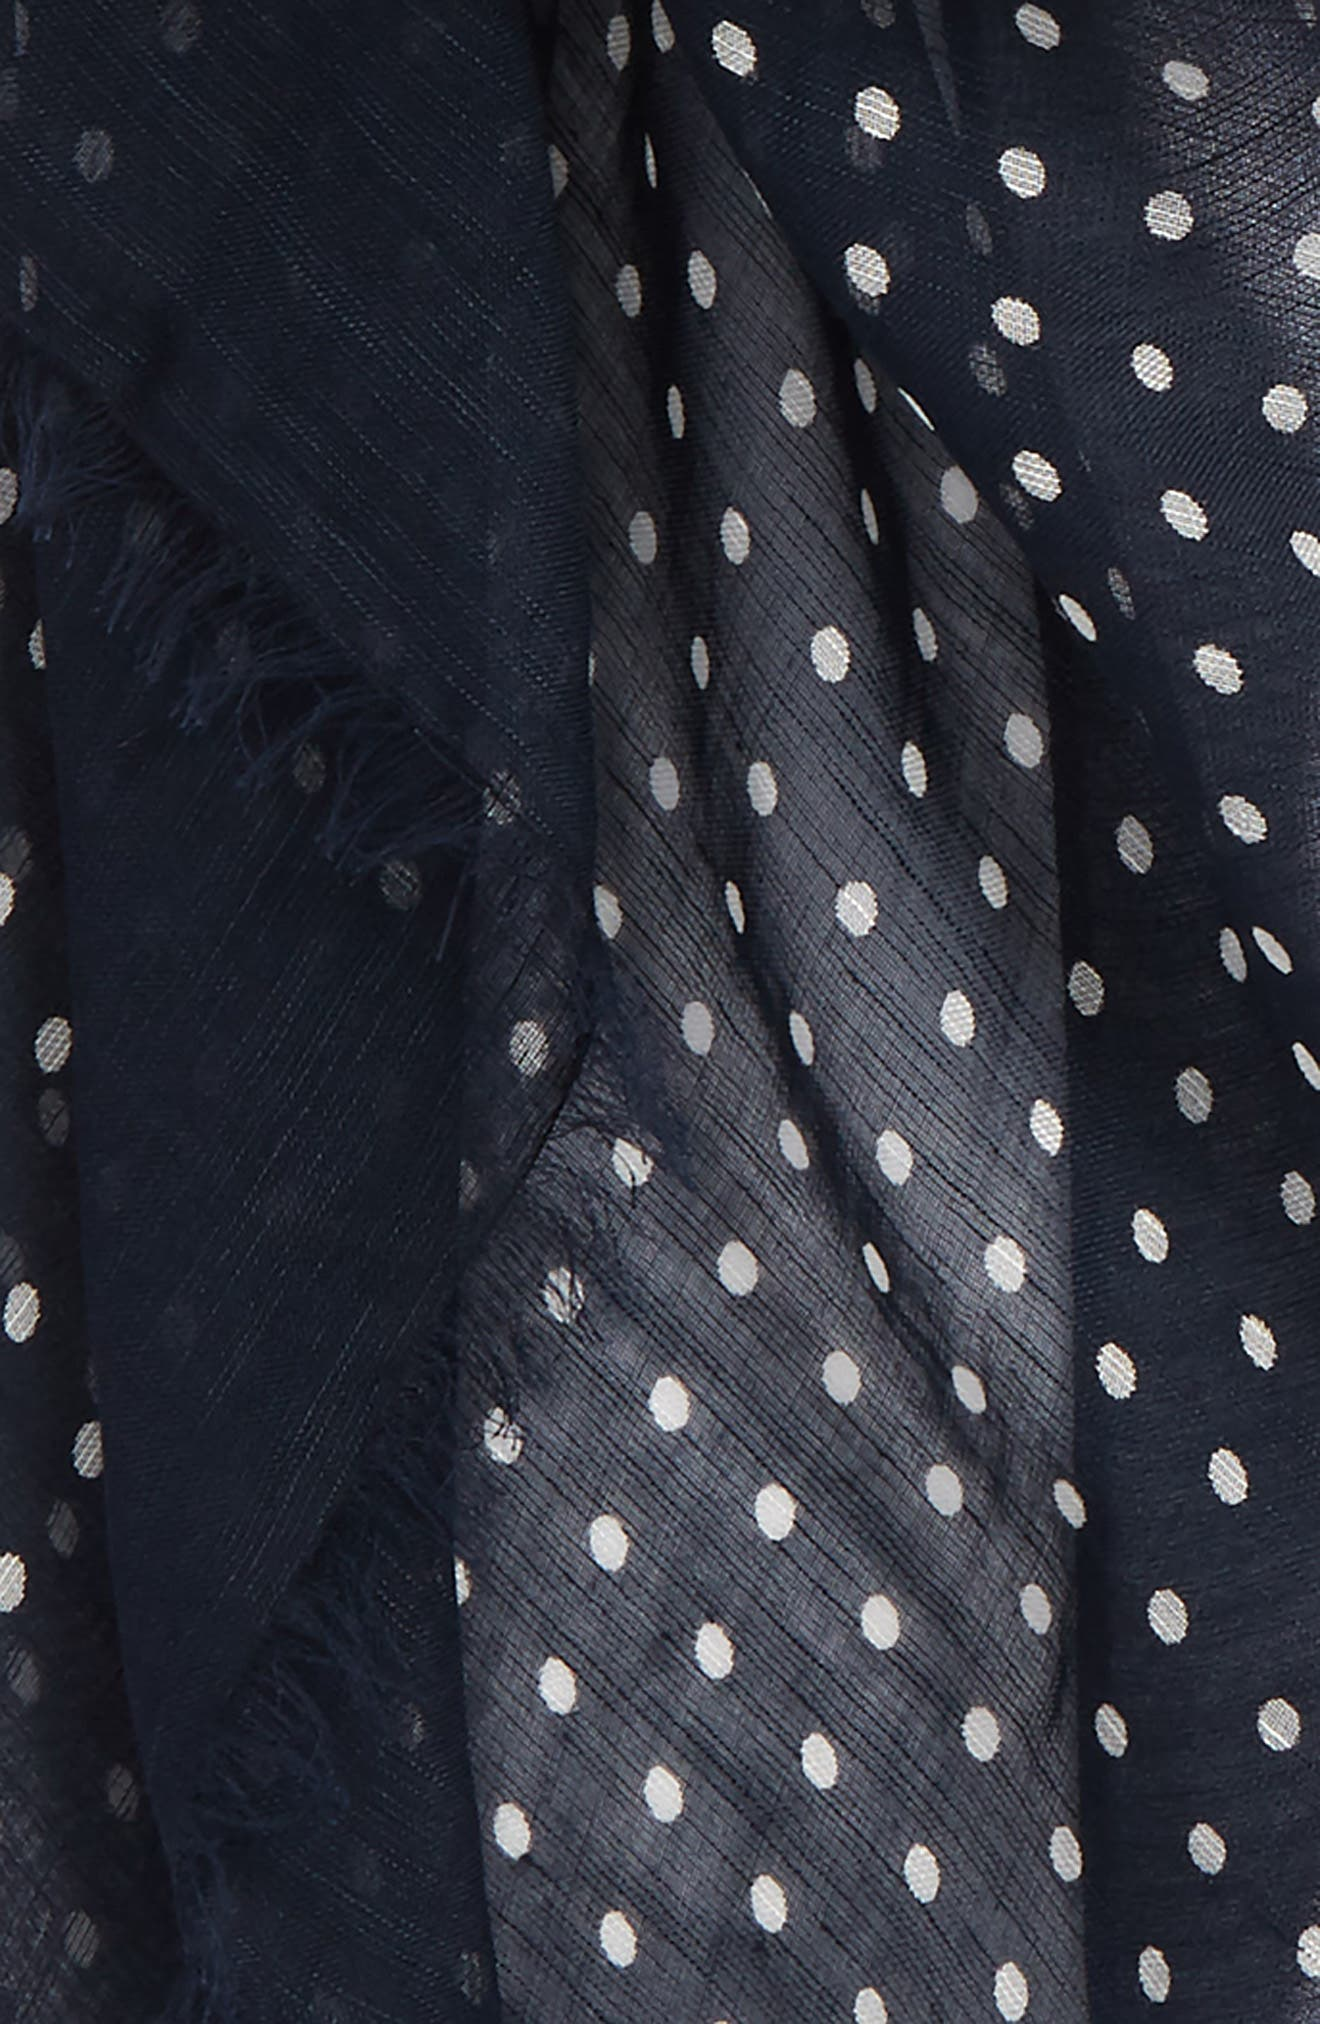 Polka Dot Linen Scarf,                             Alternate thumbnail 3, color,                             Navy With White And Sky Dot